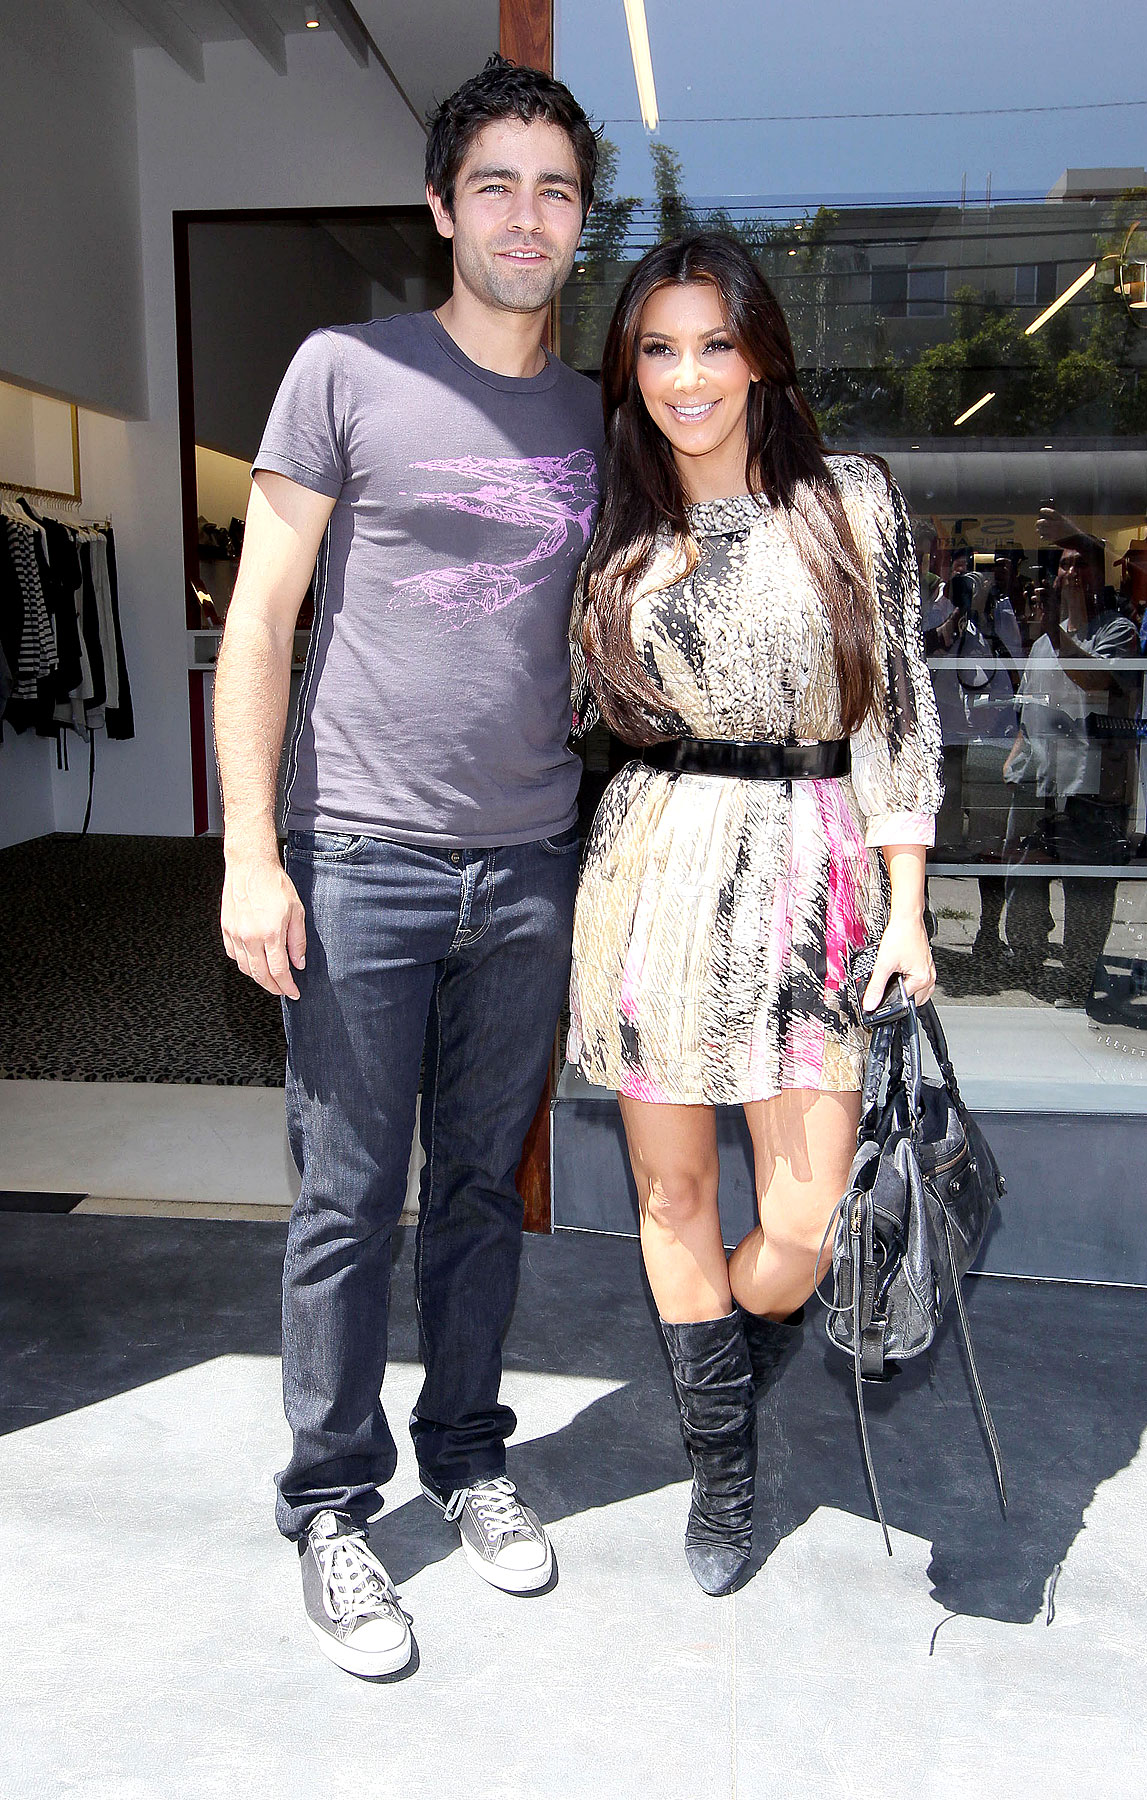 Kim Kardashian & Adrian Grenier Are Shopping Pals (PHOTOS)